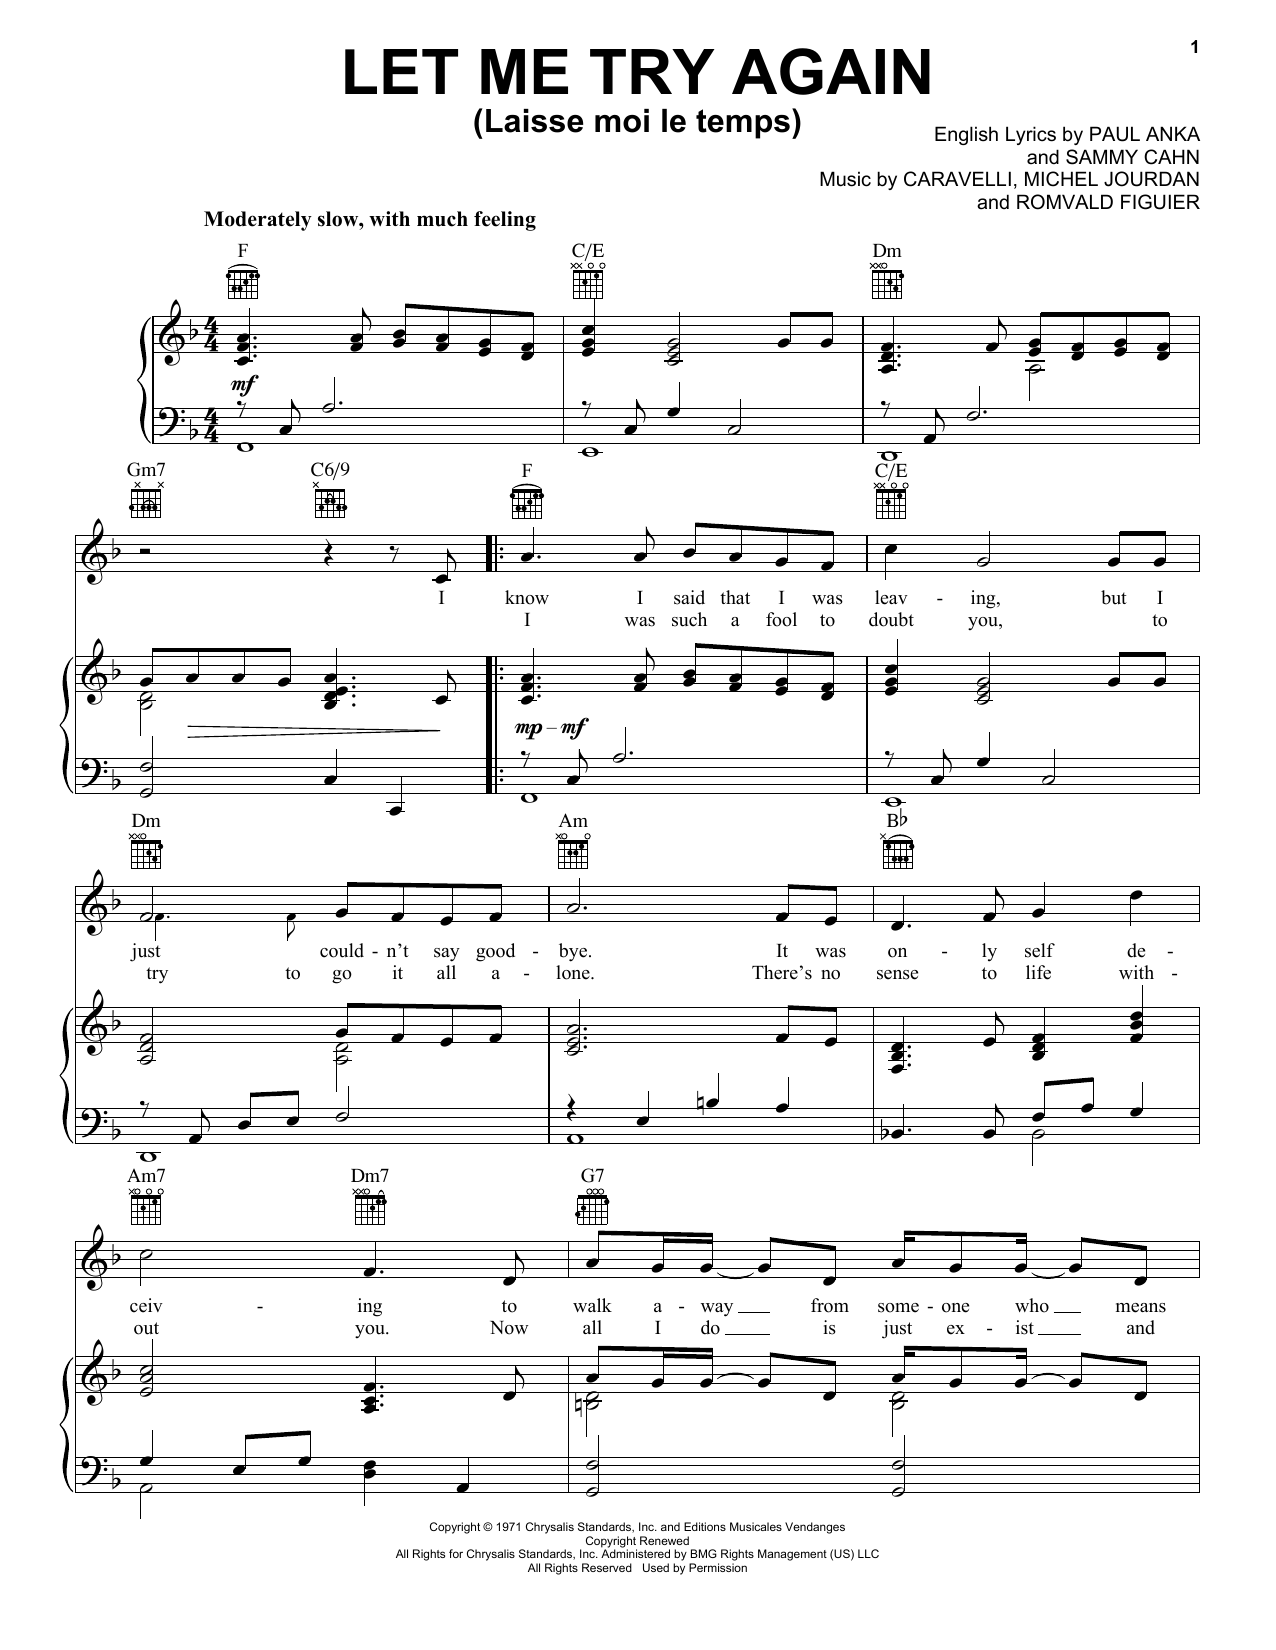 Let Me Try Again (Laisse Moi Le Temps) Sheet Music